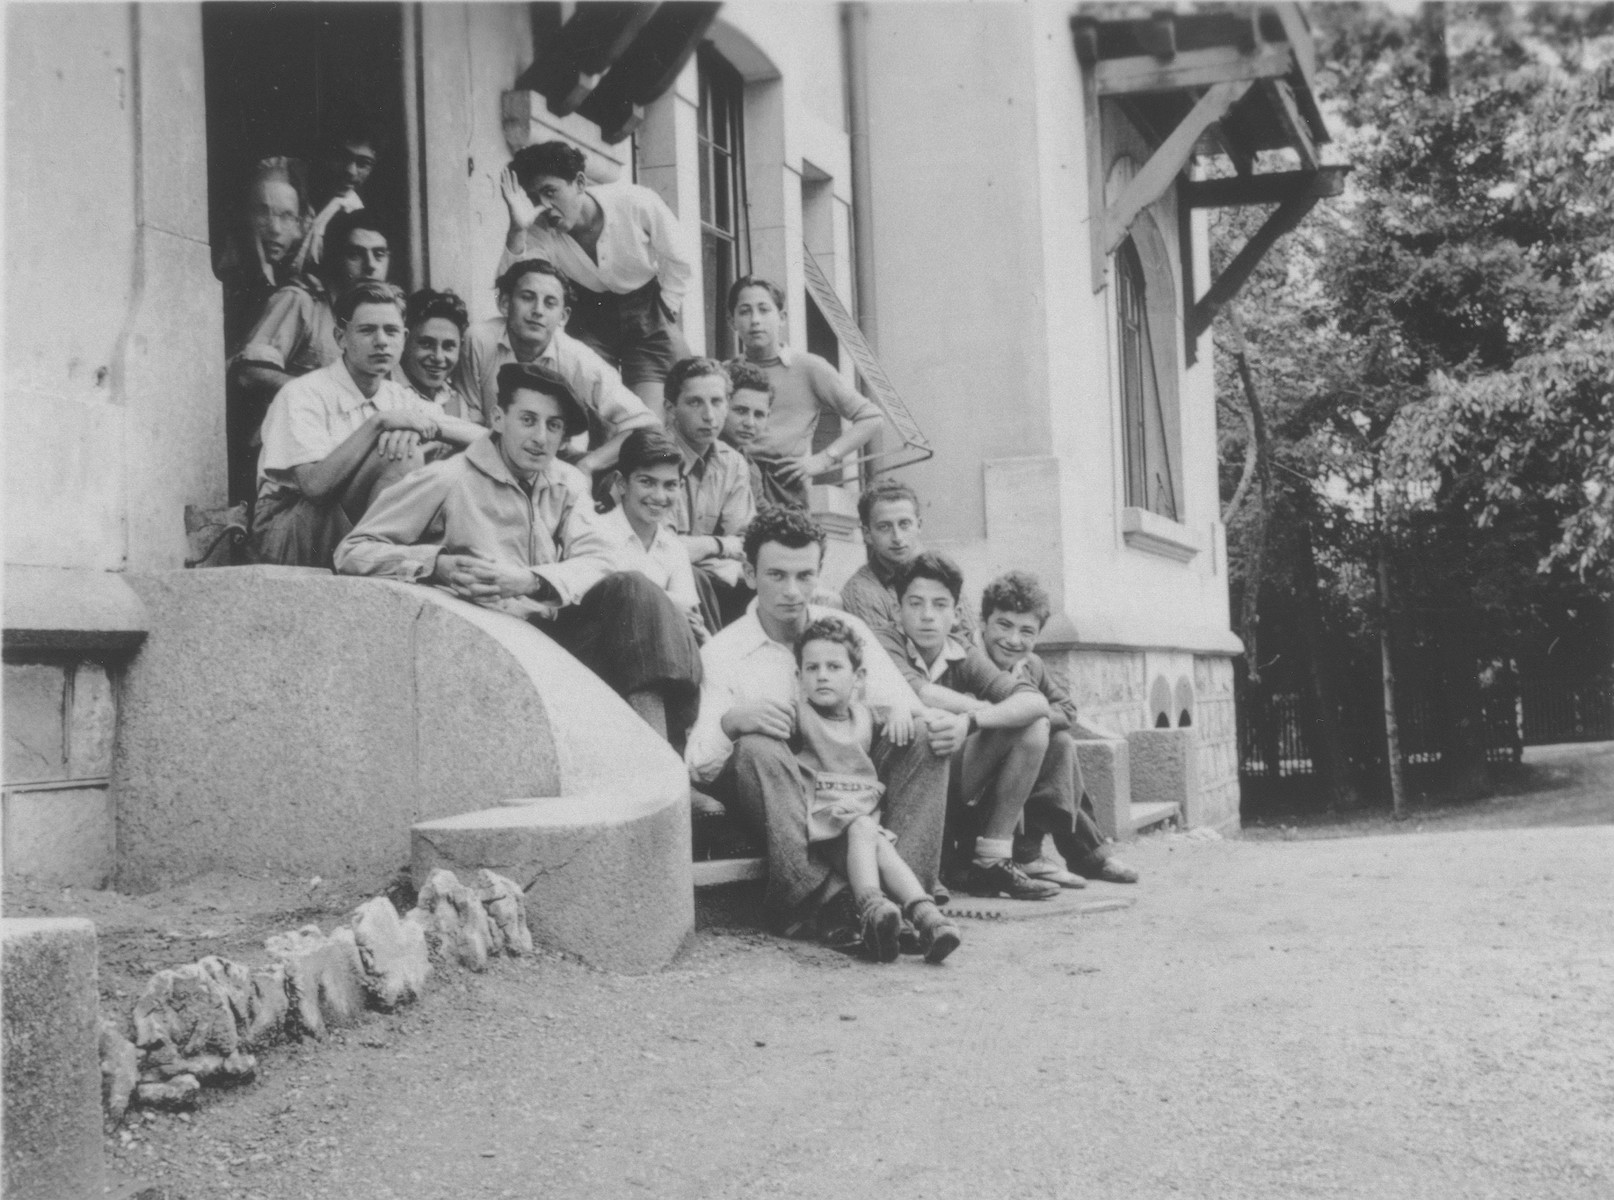 Group portrait of Jewish refugee boys in the Hôme de la Forêt, a children's home run by the OSE (Oeuvre de Secours aux Enfants) in Geneva, Switzerland.  Among those pictured are Gilles Segal and Norbert Bikales. Sitting on front row on the row is Max.